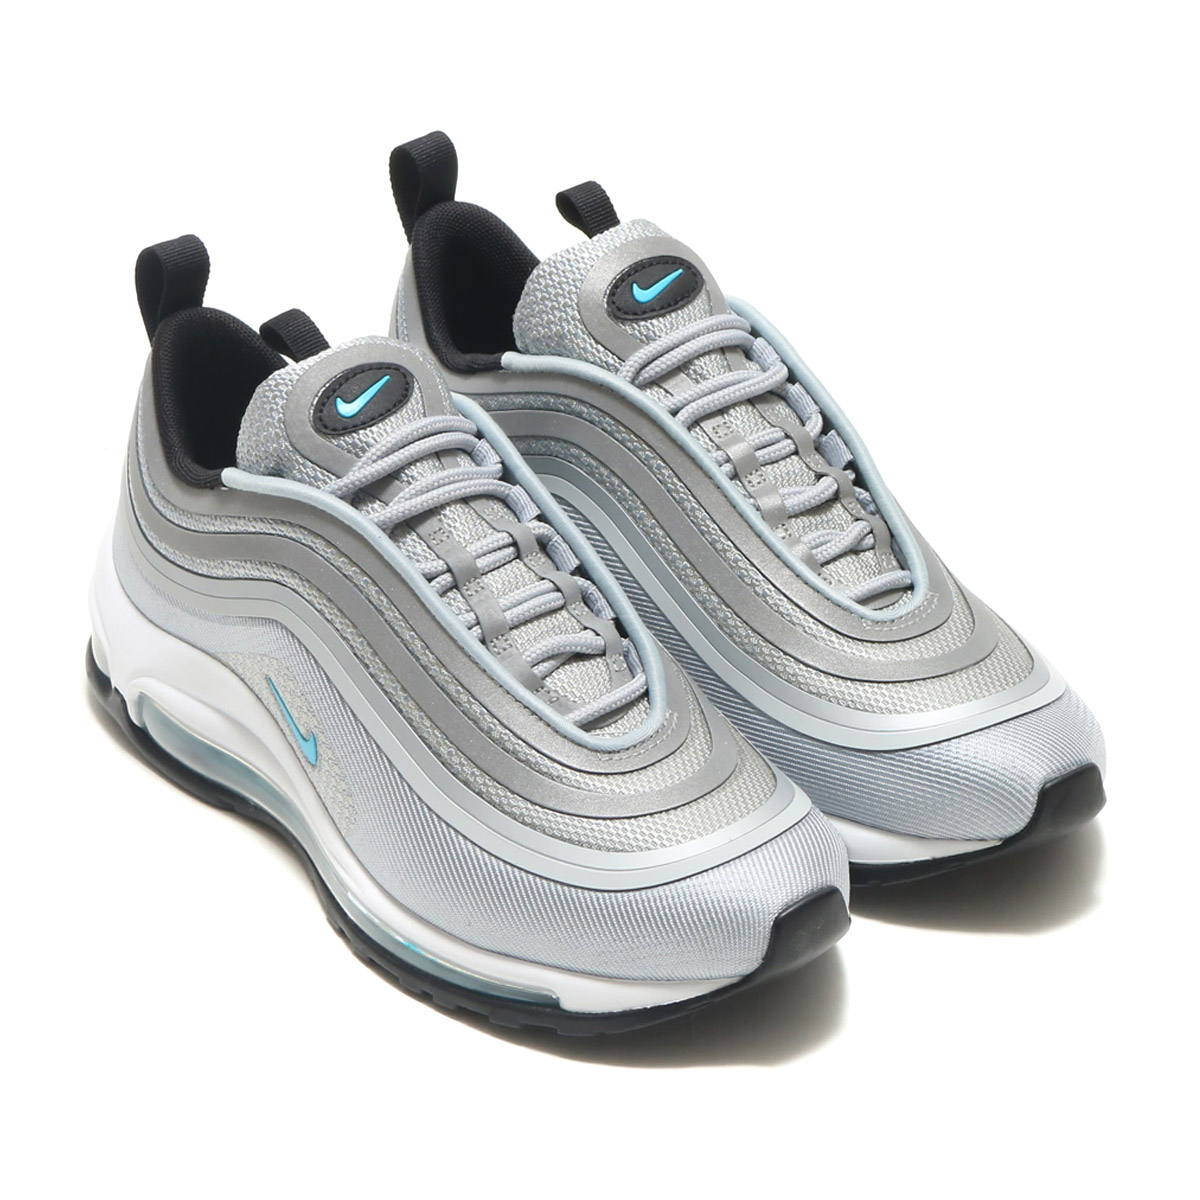 The Air Max 97 ultra arranges a classic original model by a more refined  design in contemporary style. The structure is updated in mesh and knit  material ...